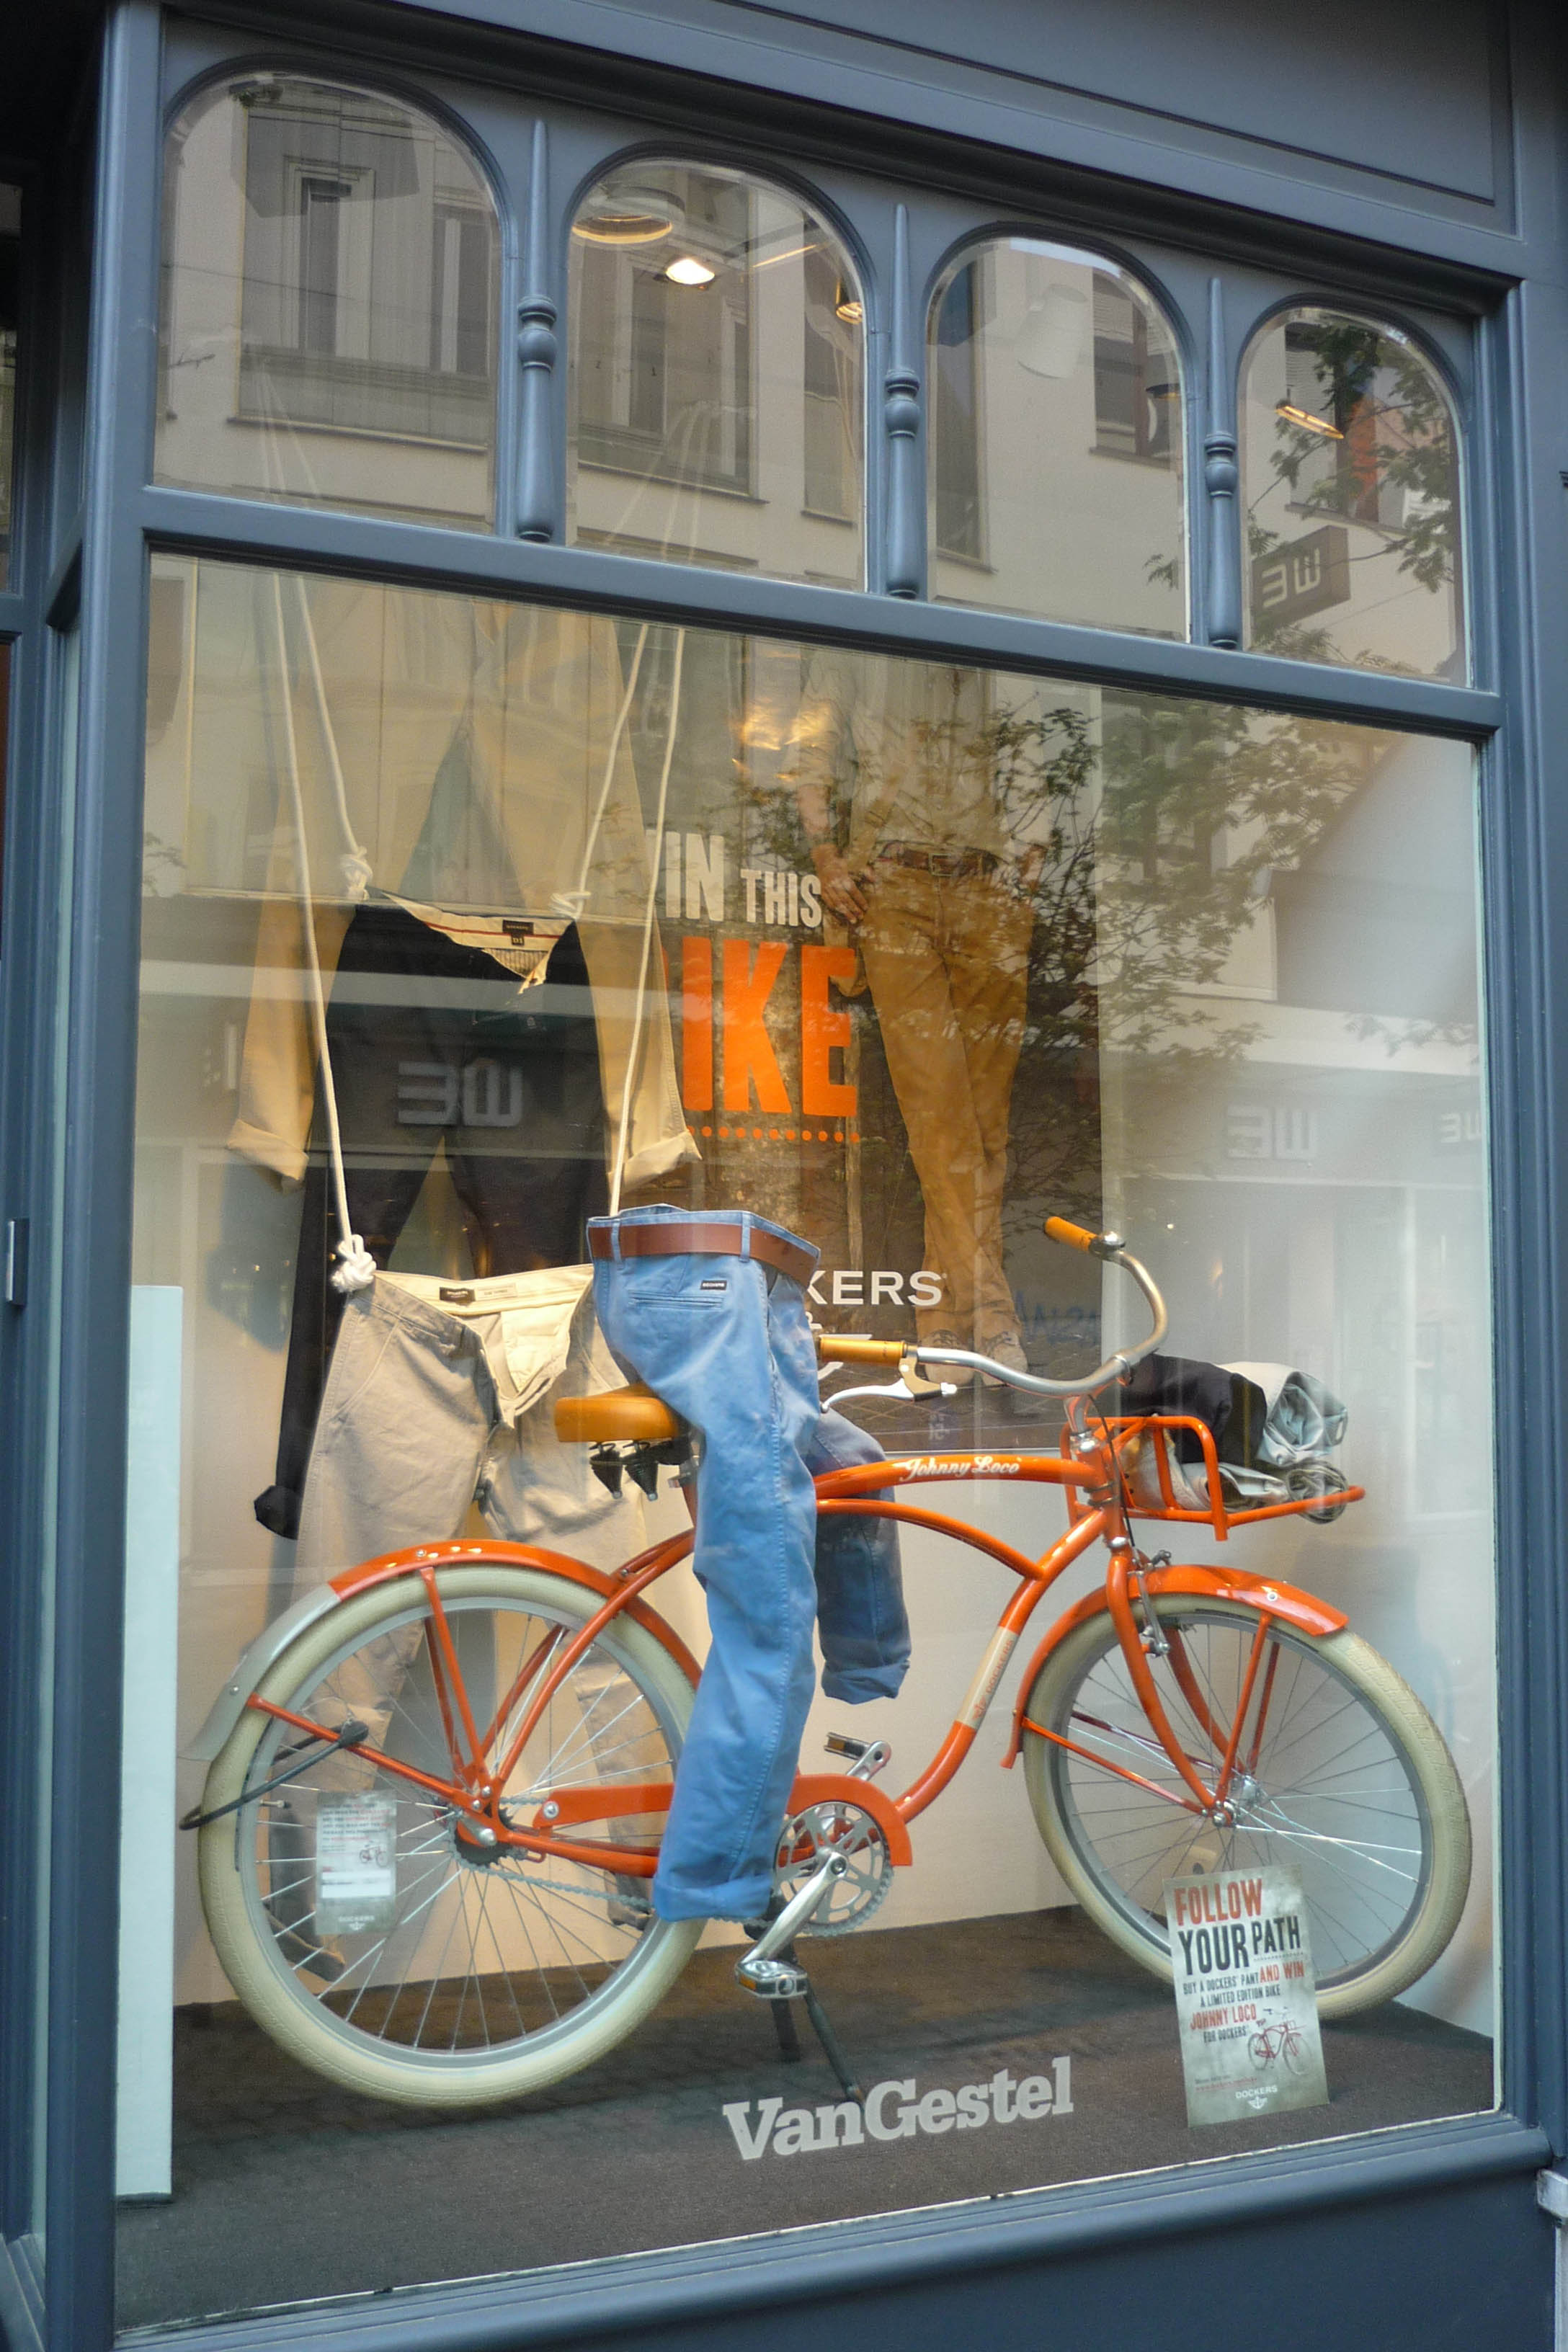 - Dockers PromowindowA window was needed for the promotion of the brand DOCKERS. The briefing was simple: show off the items and combine it with the price you could win. In this case a nice retro bike.